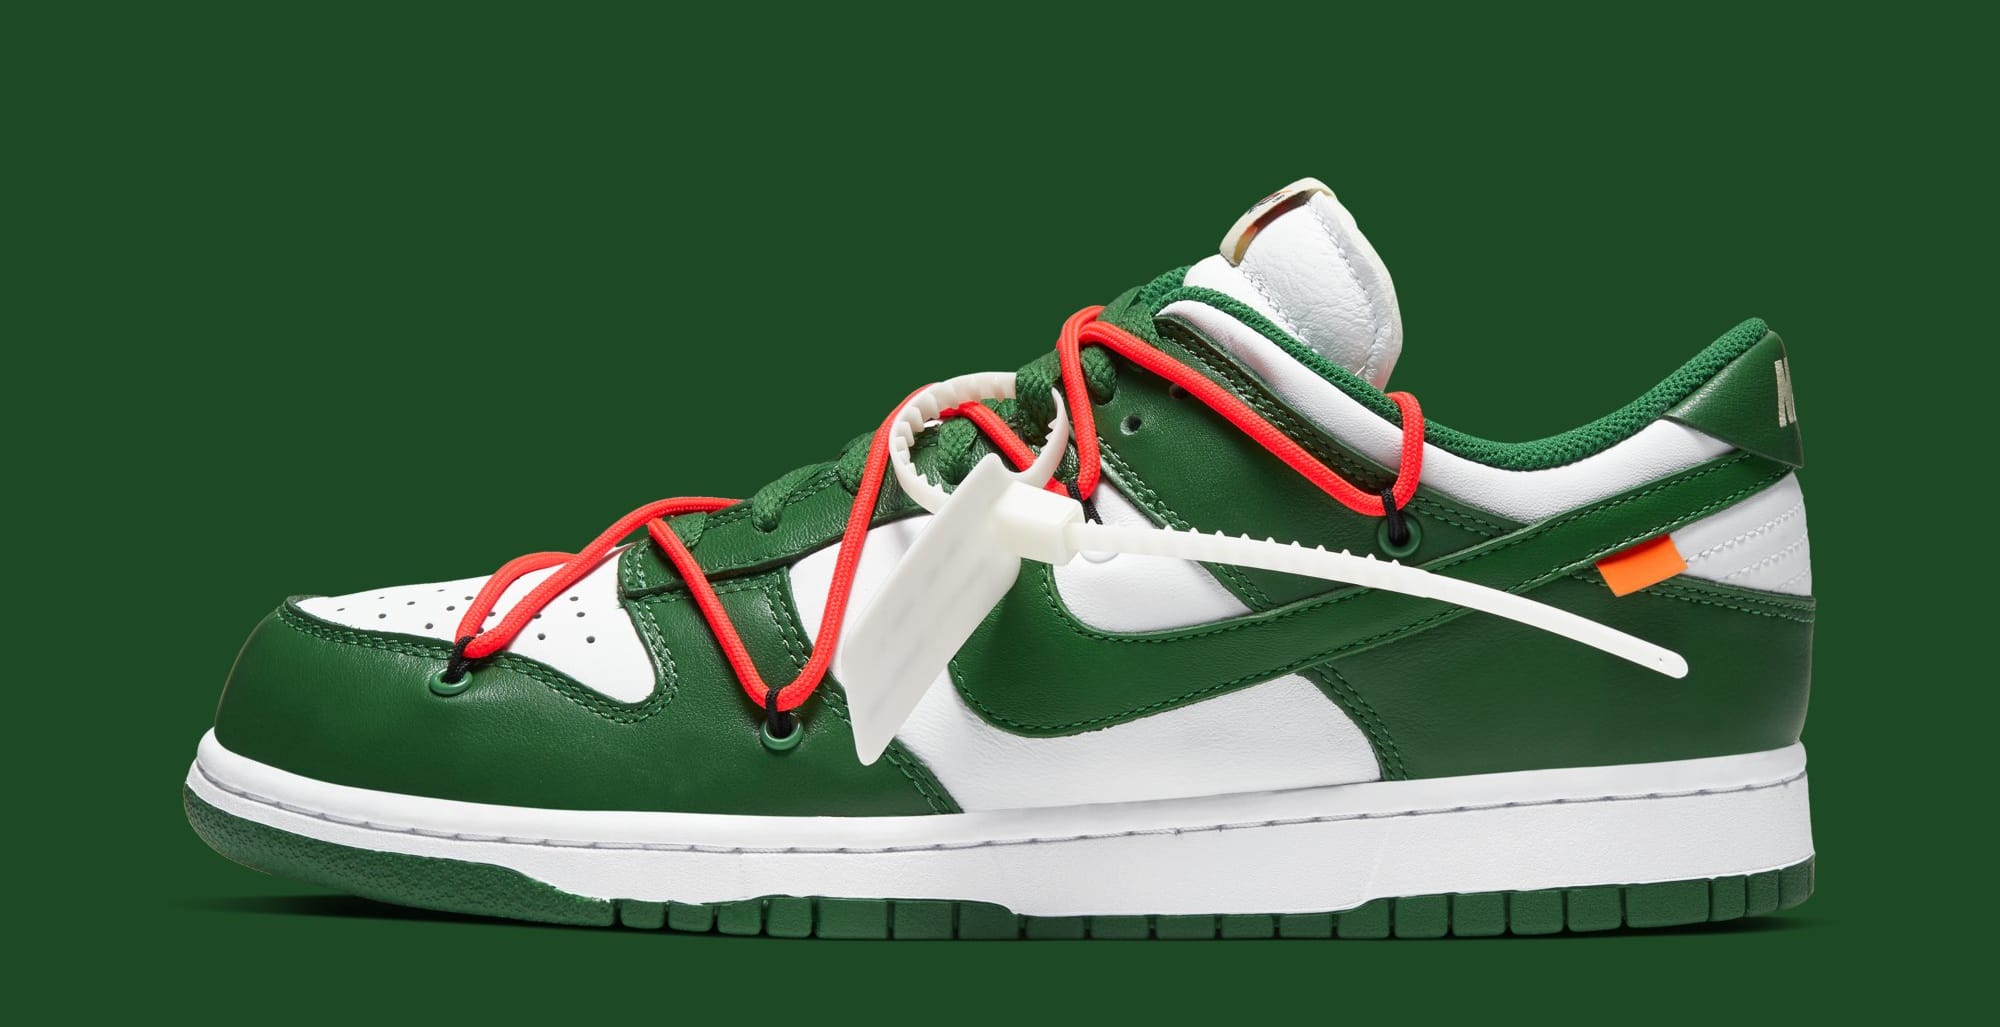 Off-White x Nike Dunk Low 'White/Pine Green' CT0856-100 (Lateral)